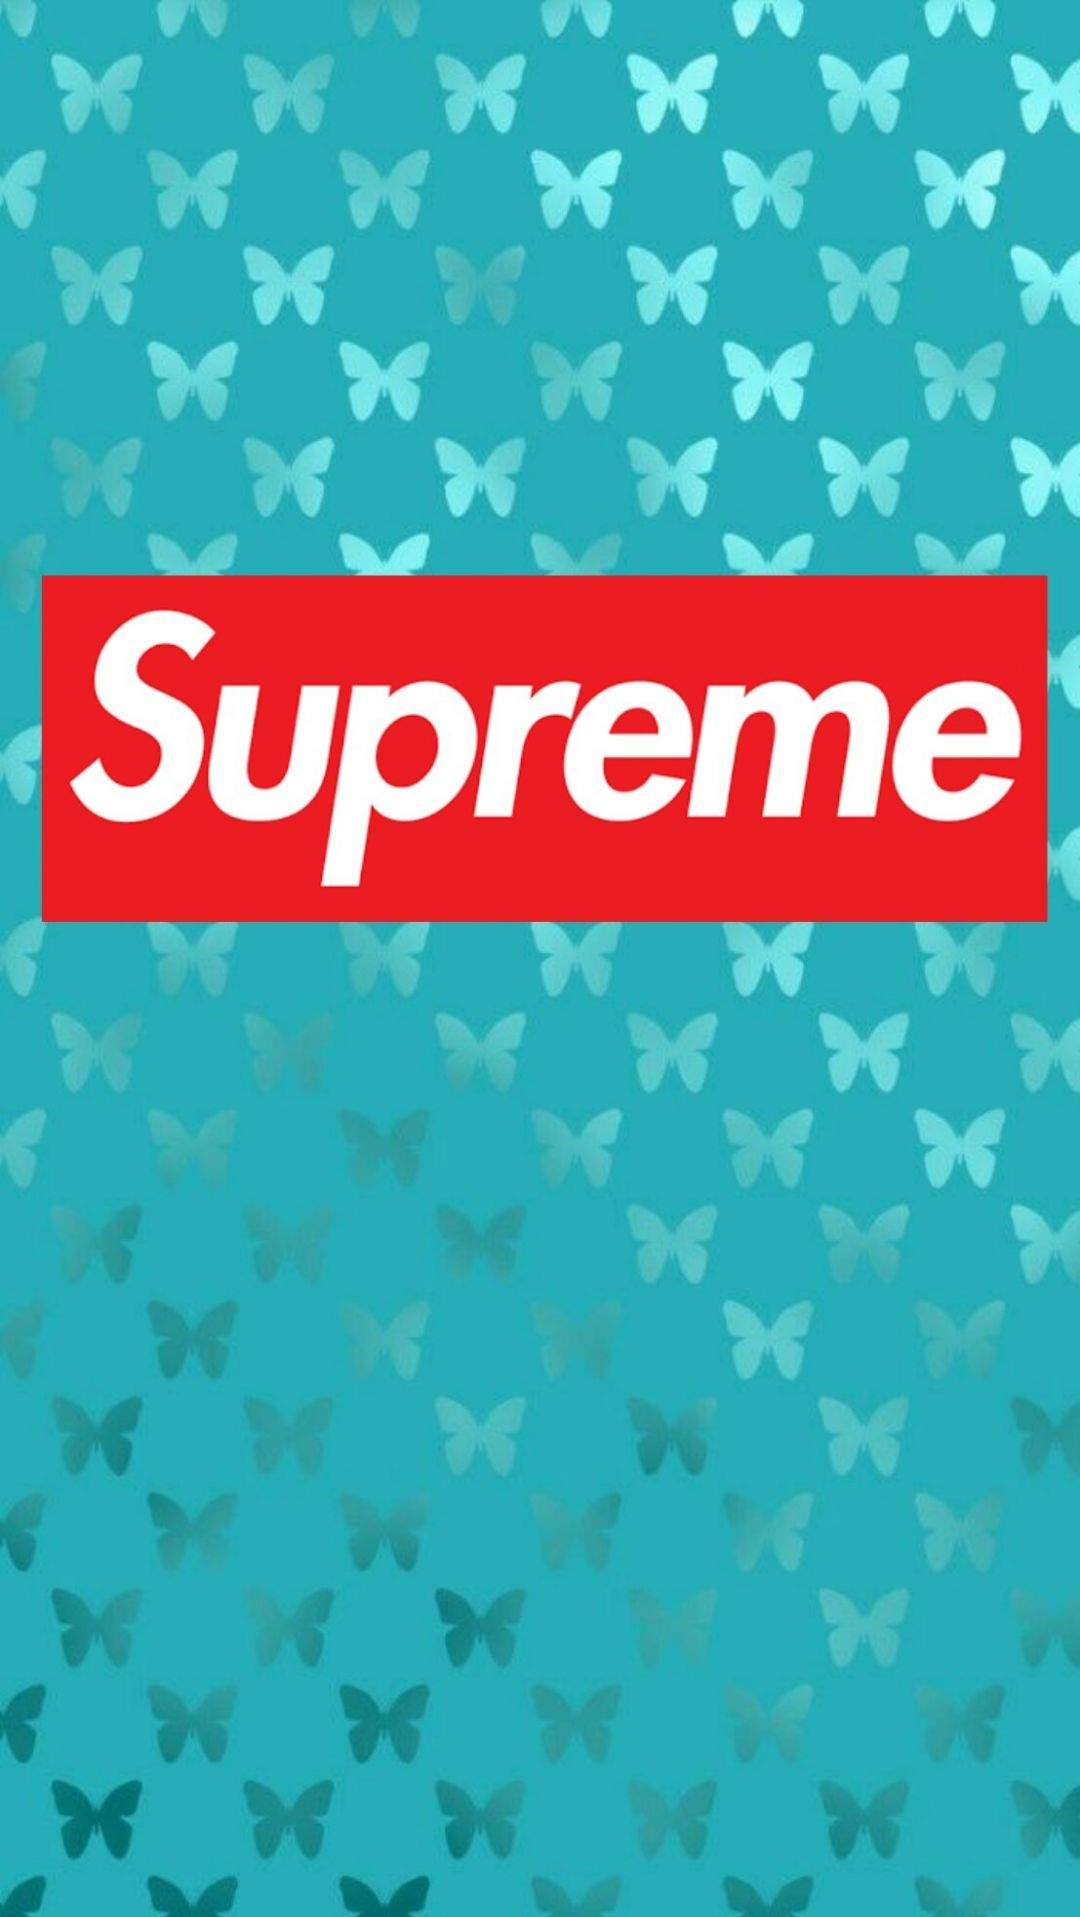 195 Supreme Android Iphone Desktop Hd Backgrounds Wallpapers 1080p 4k 1107x1965 2021